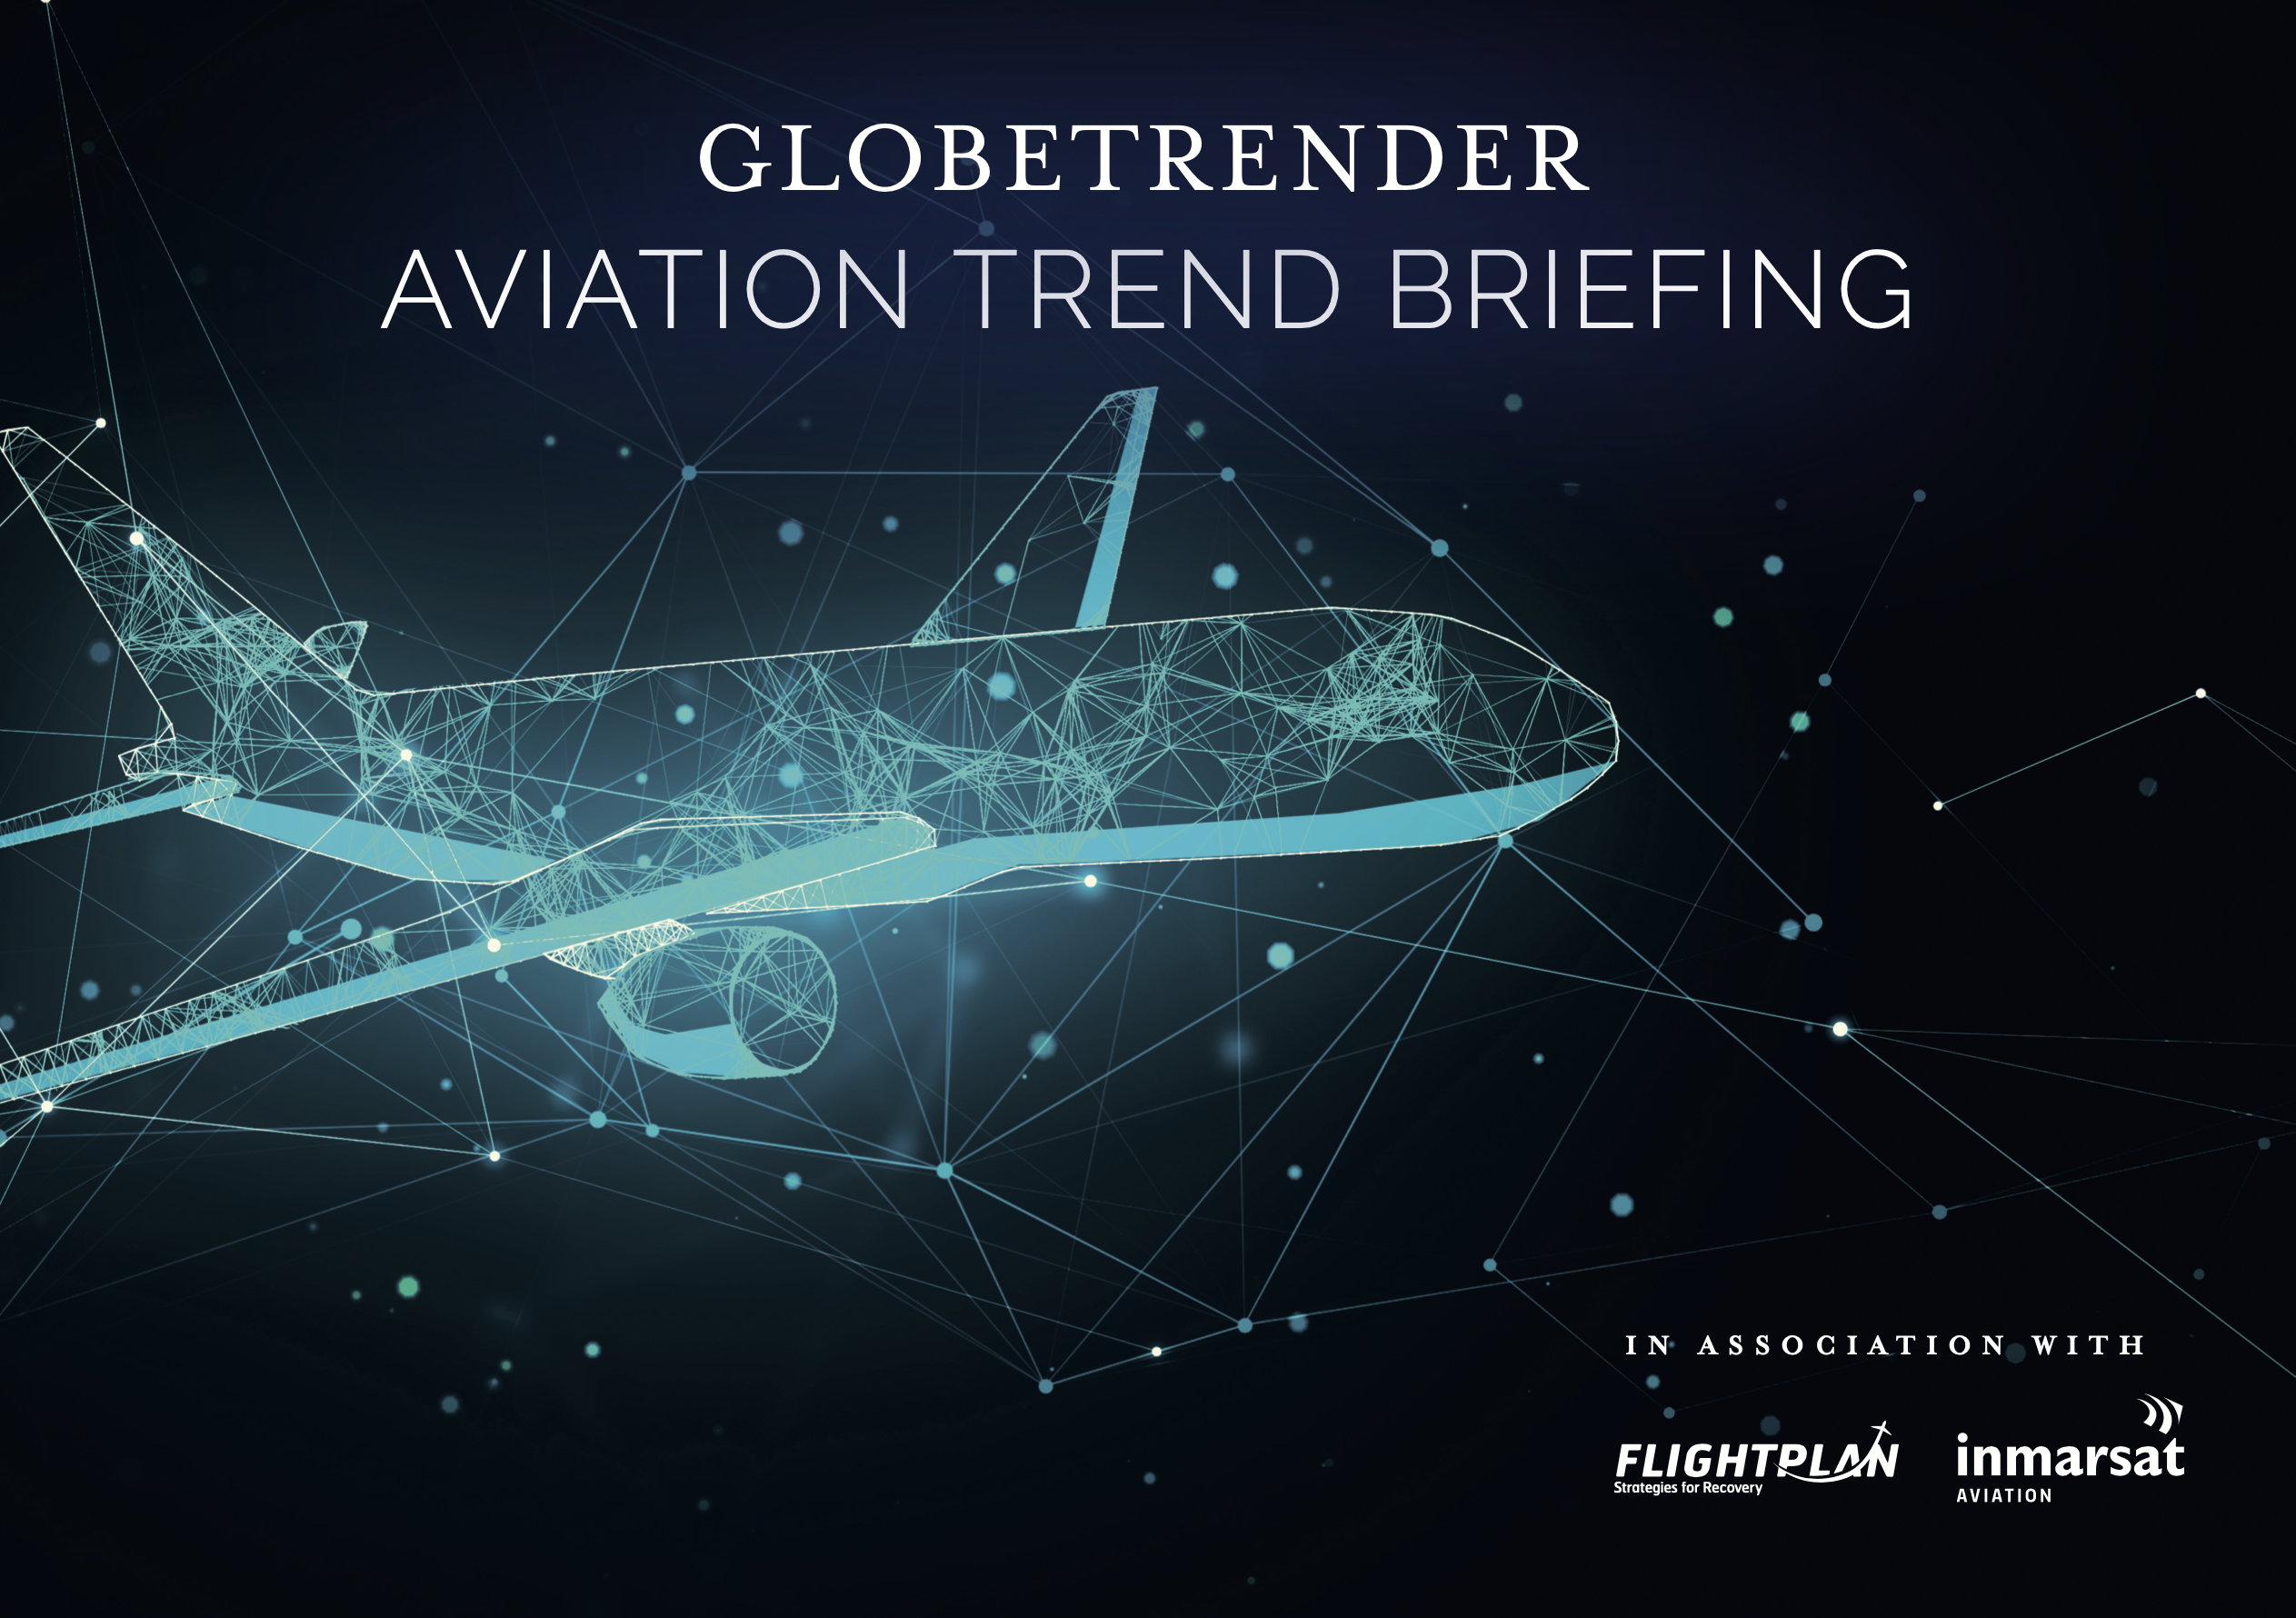 Globetrender Aviation Trend Briefing